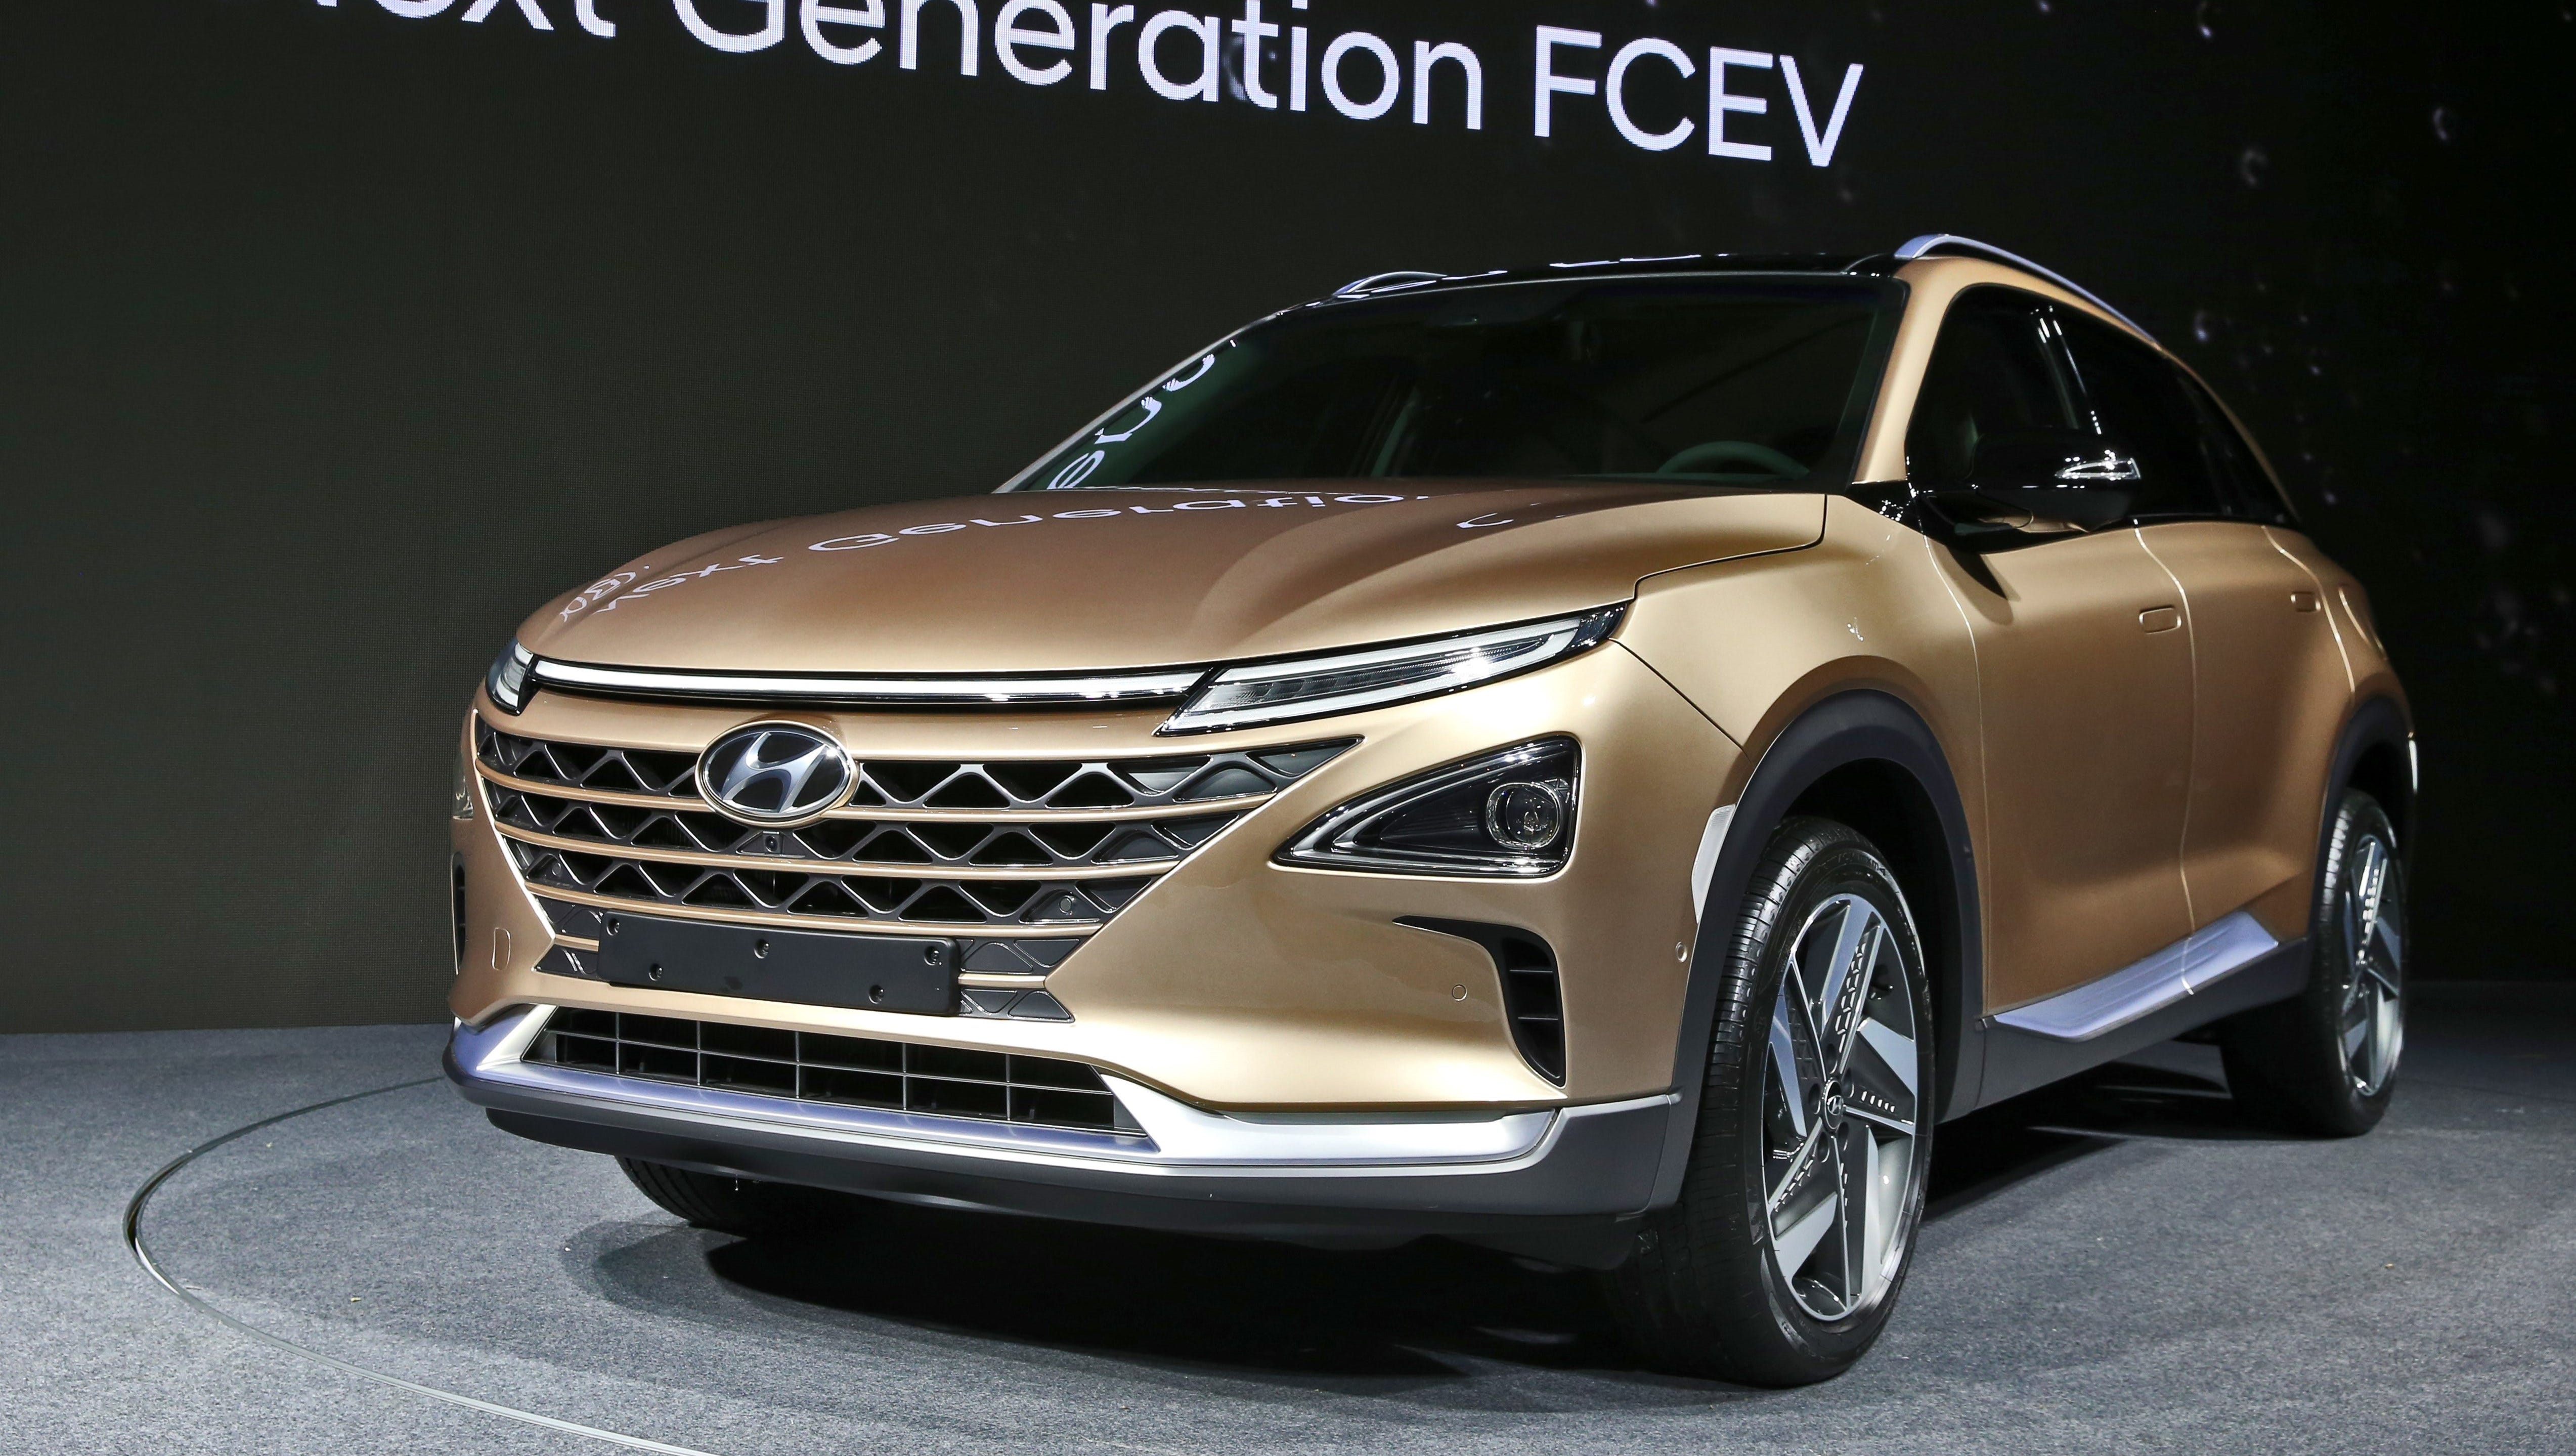 Hyundai Reveals Hydrogen Fuel Cell Suv With 360 Mile Range